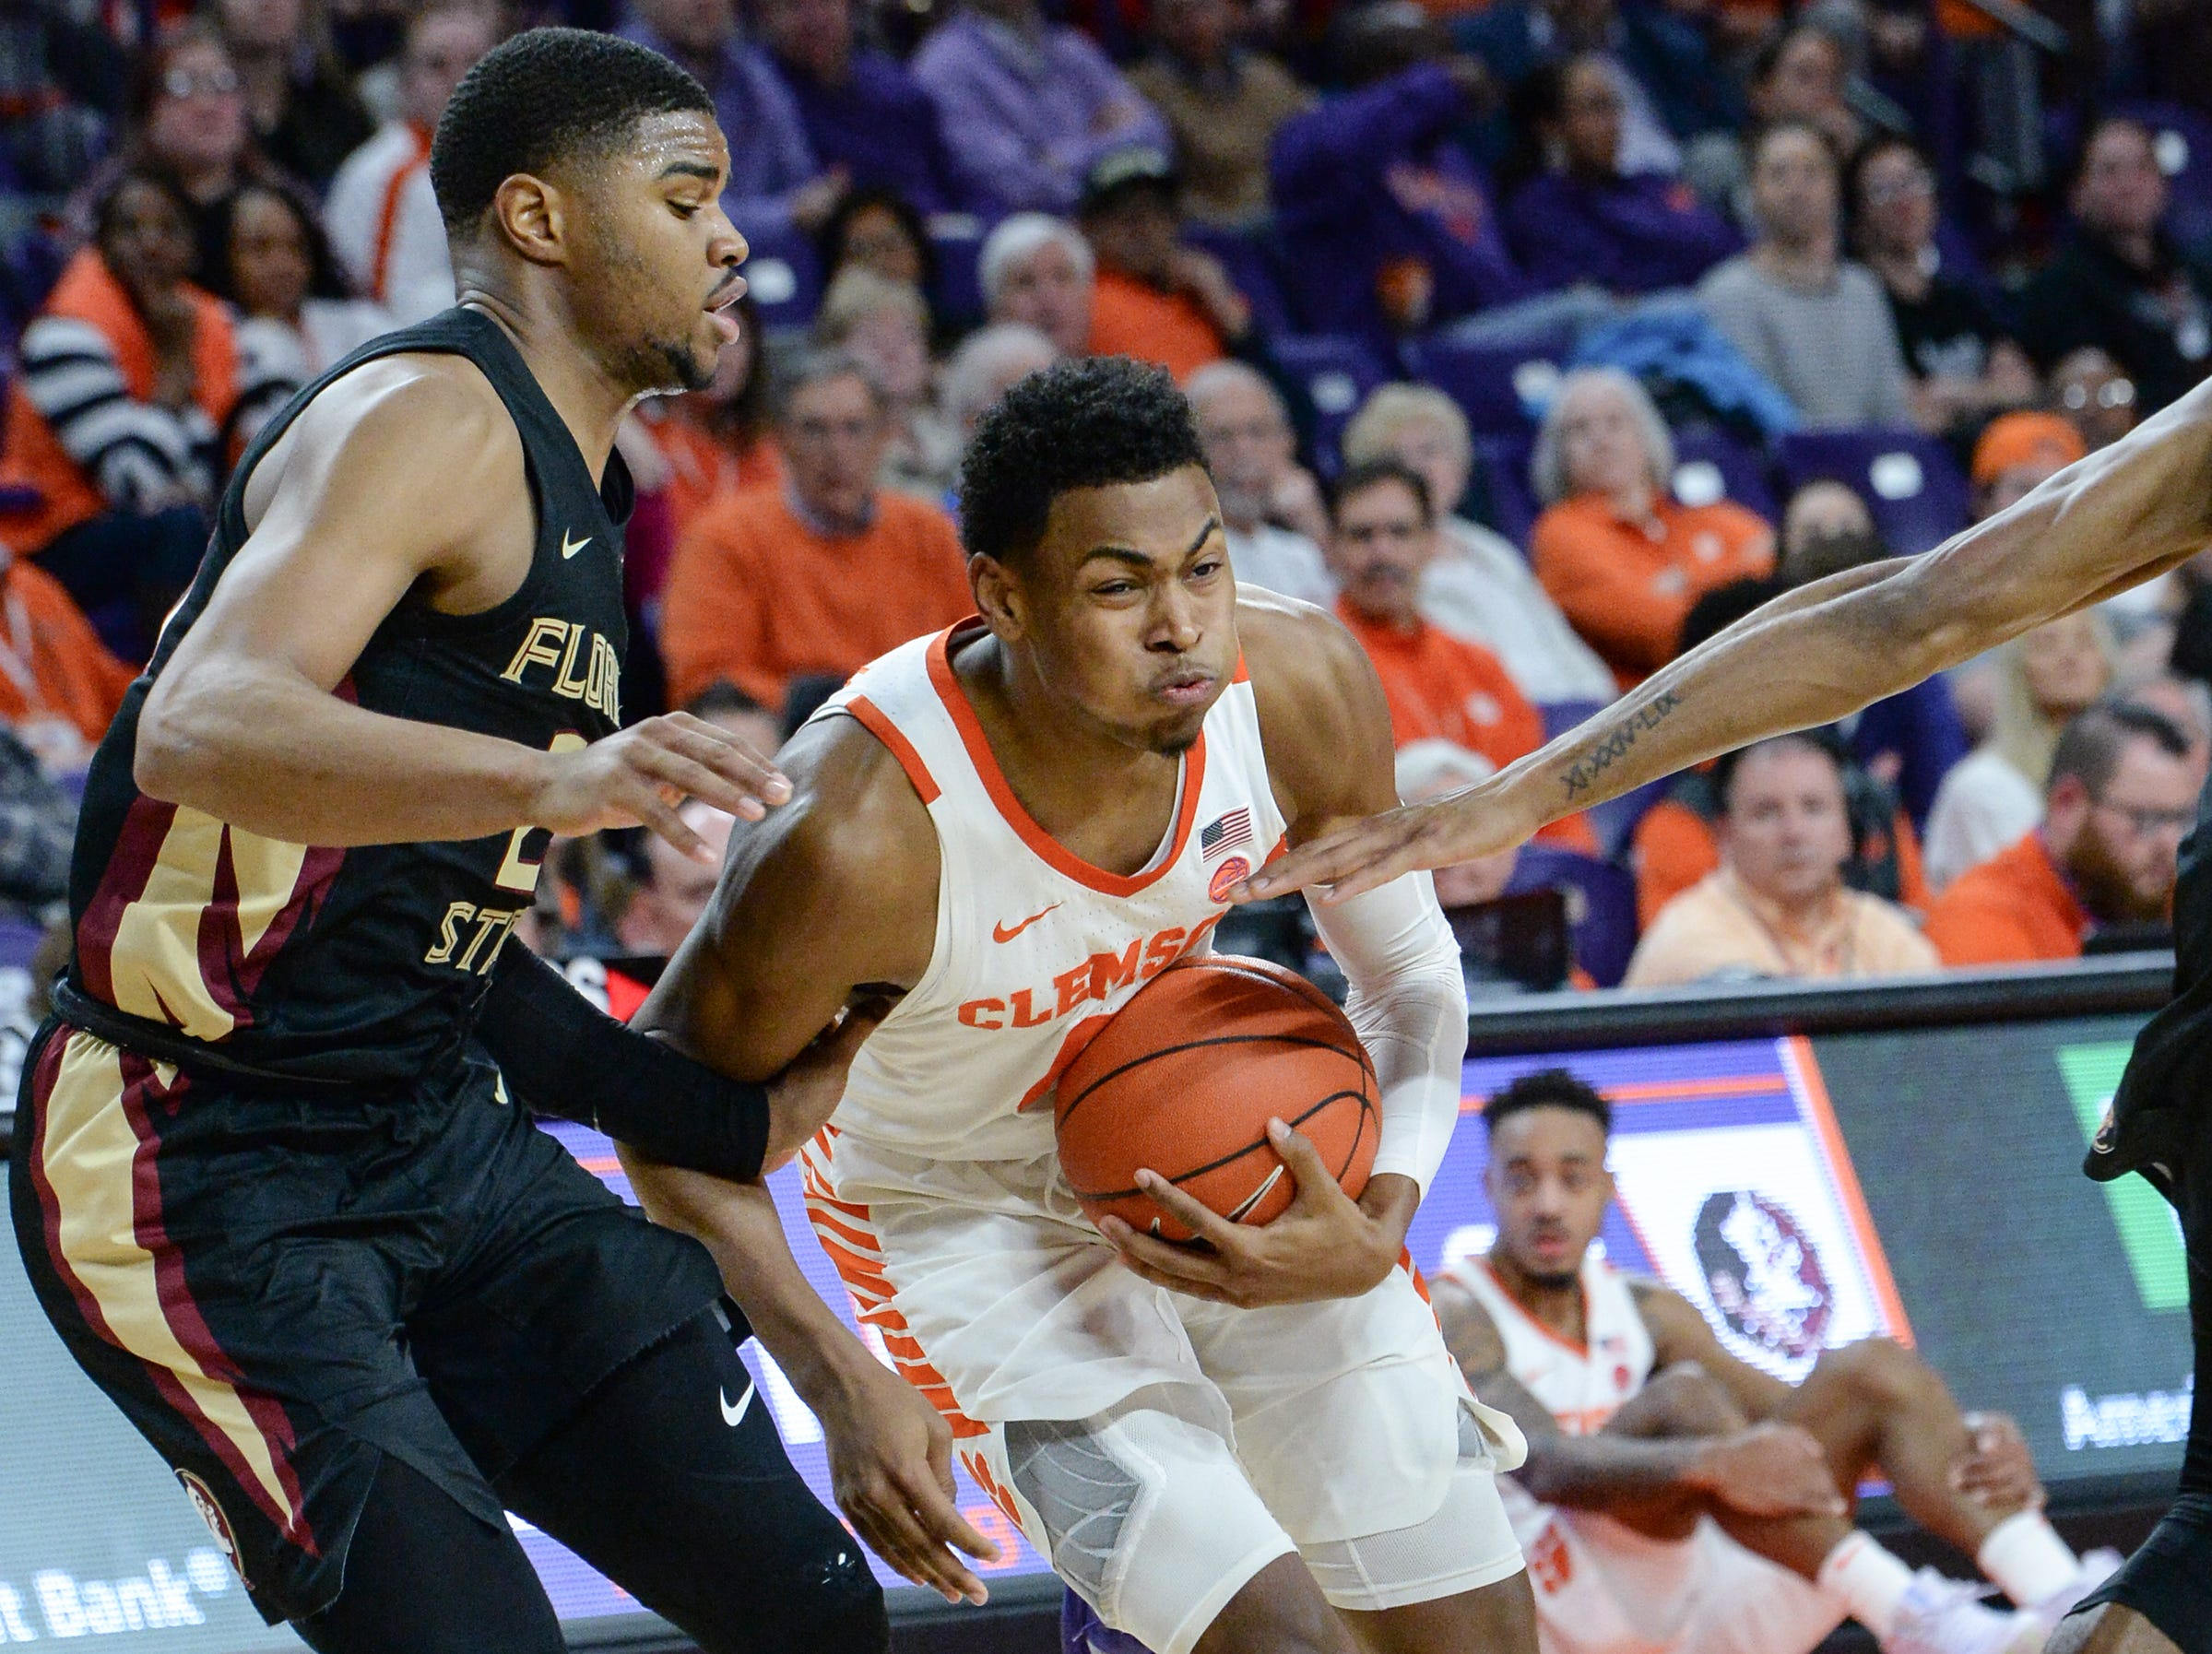 Clemson center Clyde Trapp (0) dribbles near Florida State guard M.J. Walker(23) during the first half at Littlejohn Coliseum in Clemson Tuesday, February 19, 2019.